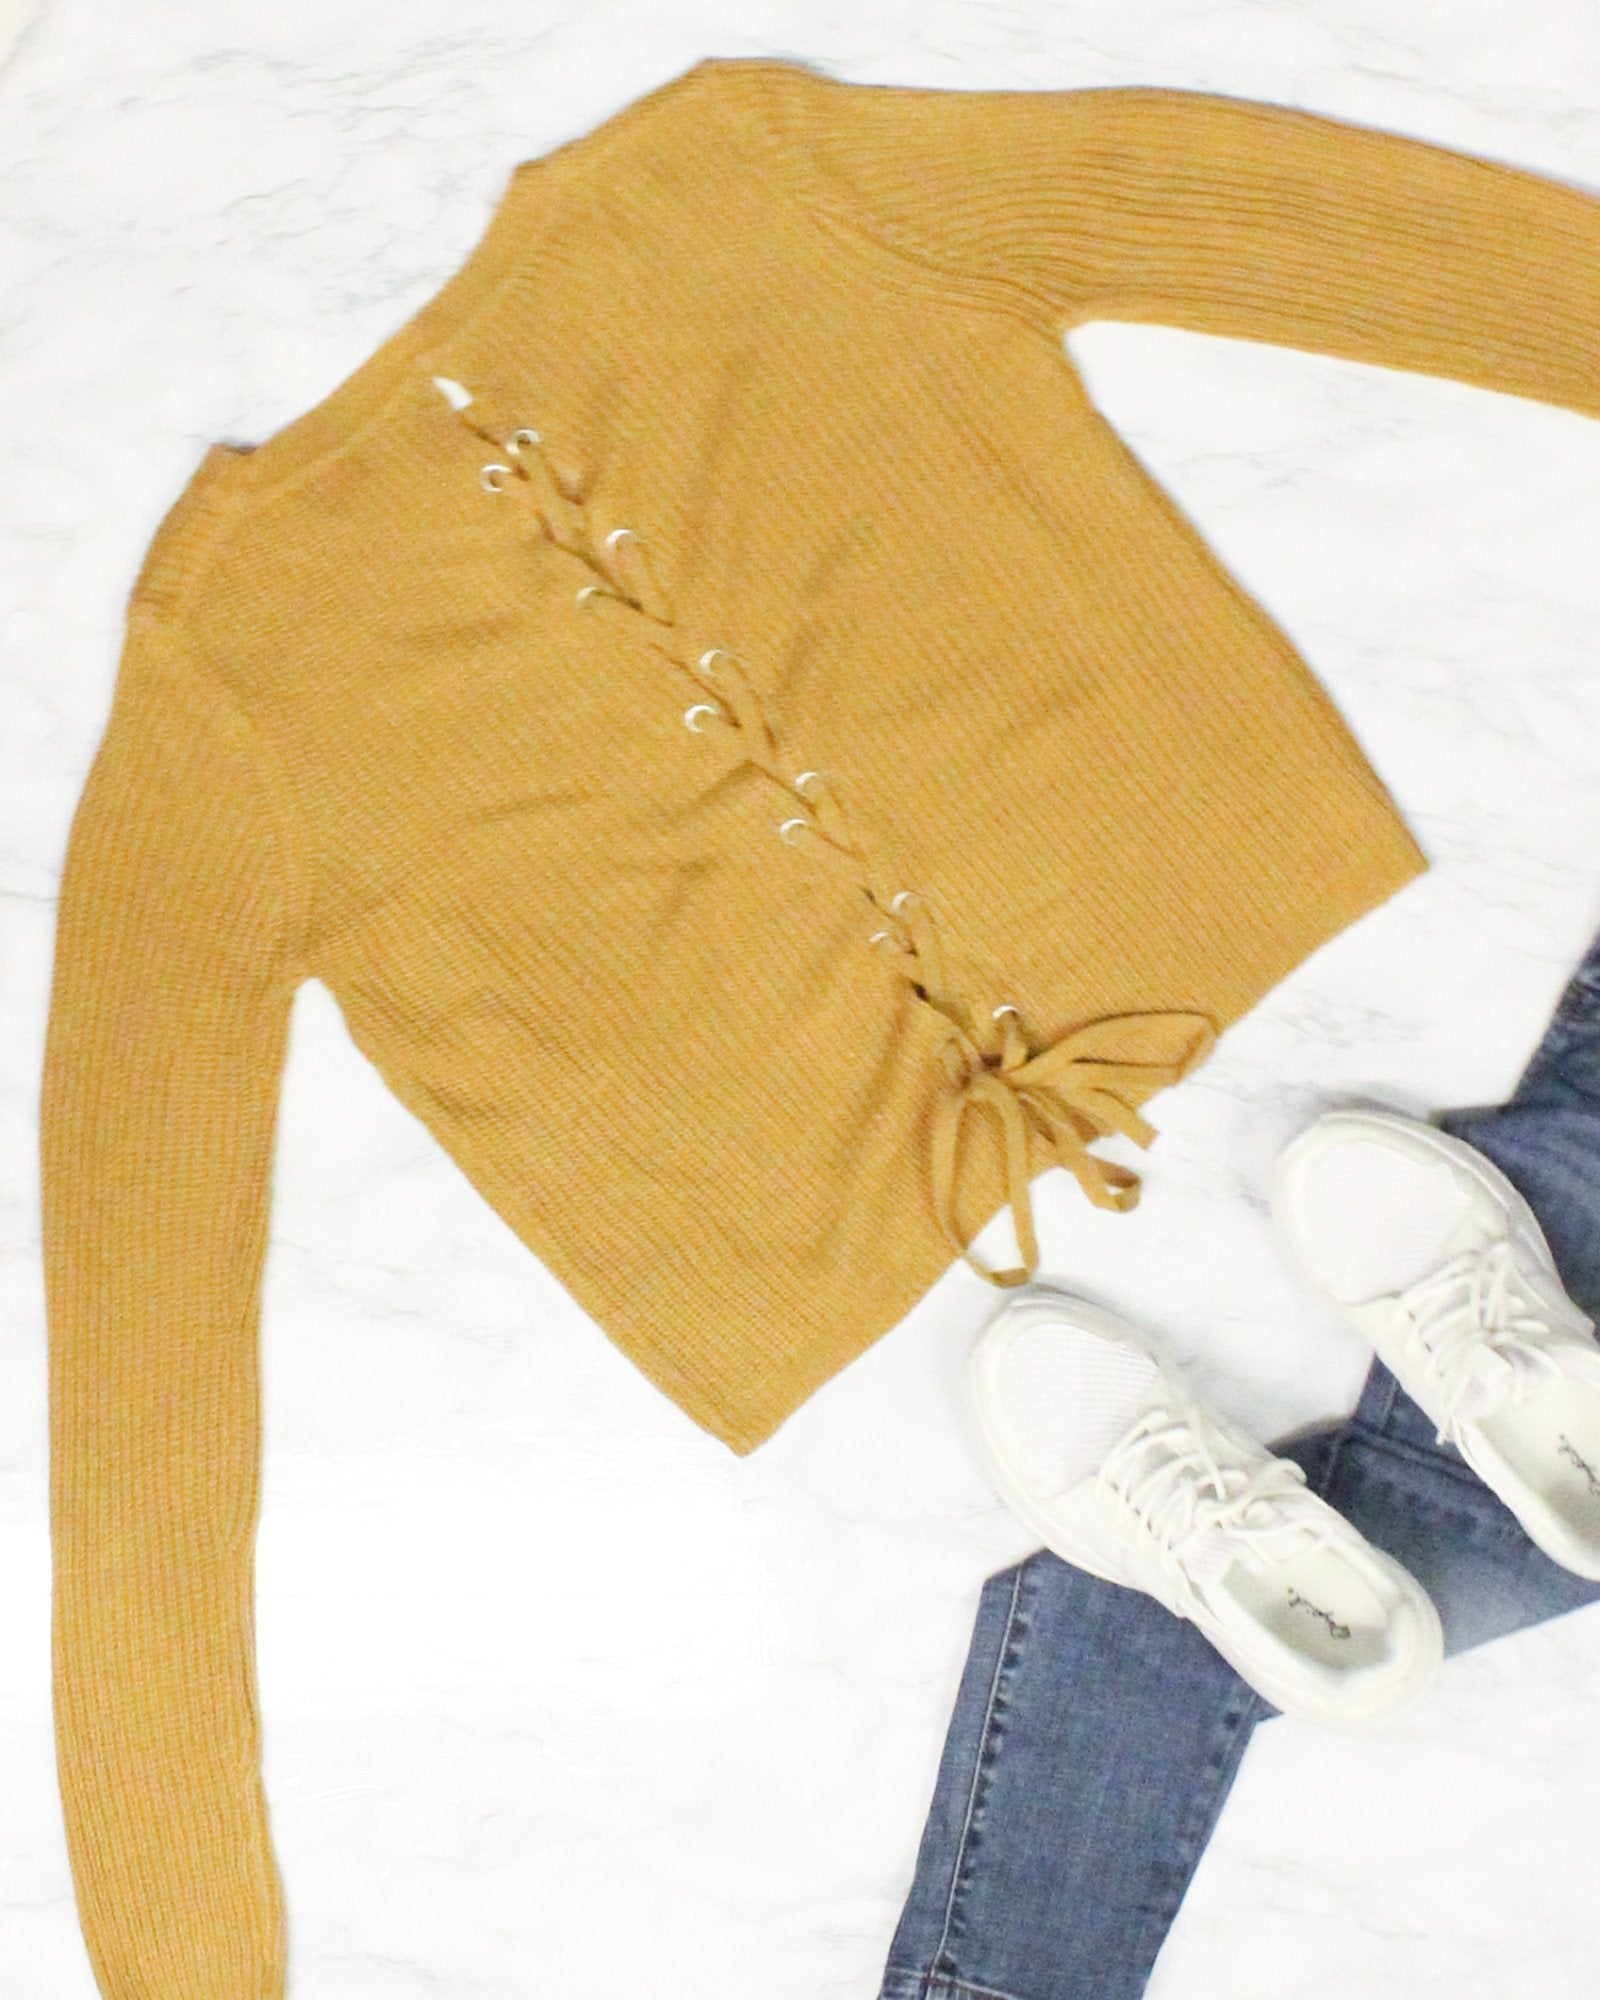 Fashion Q Shop Q A Good Vibe State of Mind Sweater (Dark Mustard) 65919